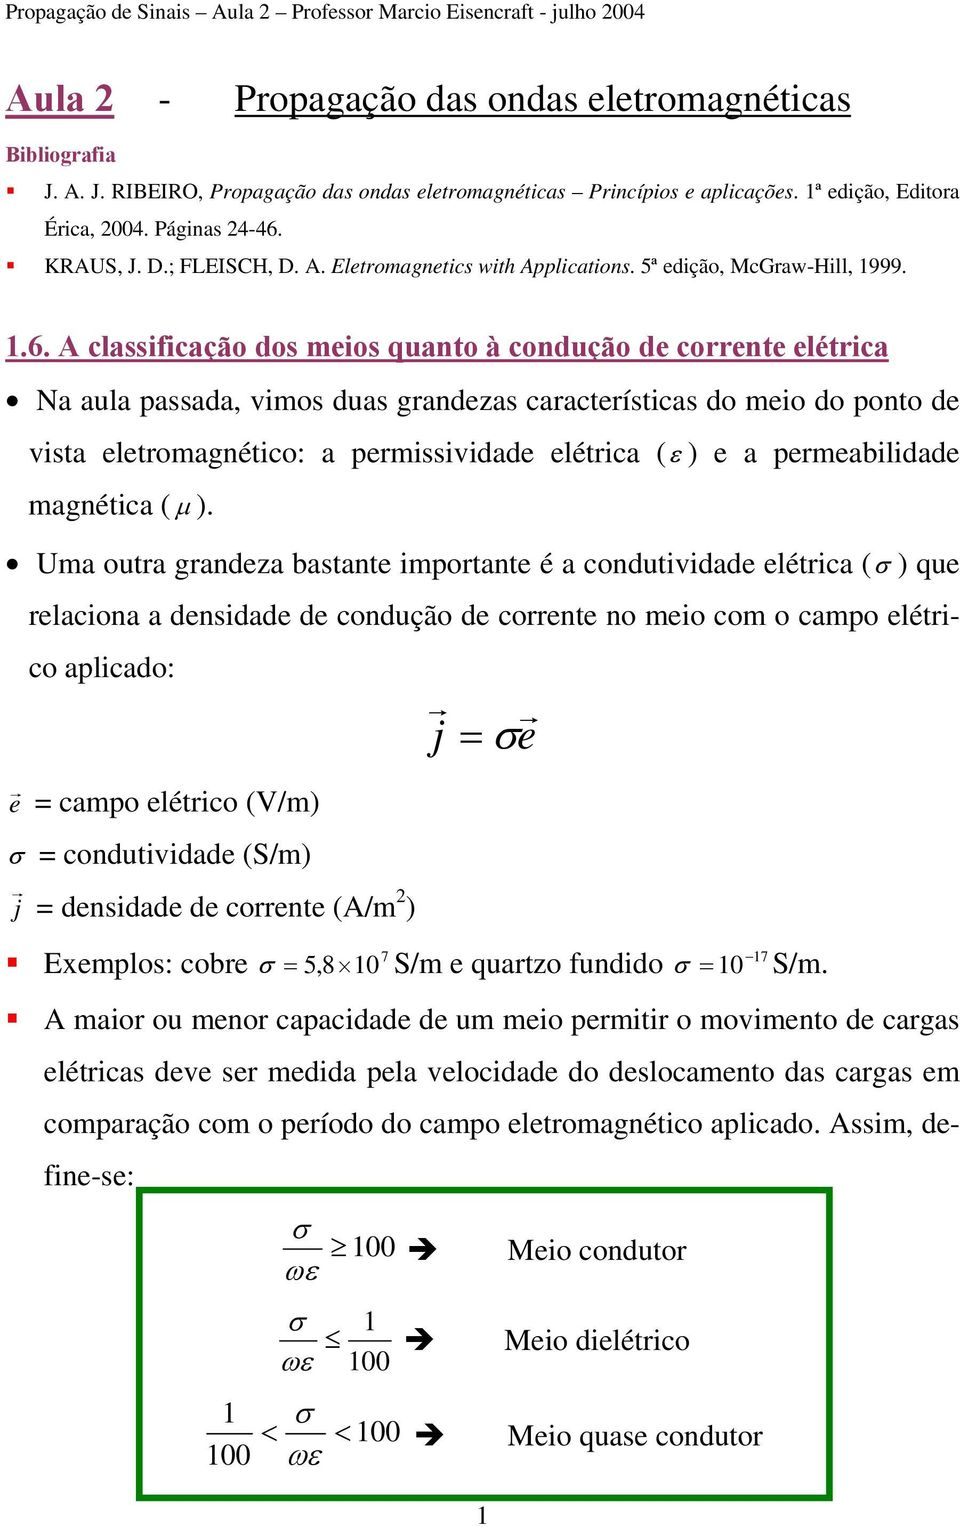 KRAUS, J. D.; FLEISCH, D. A. Eletromagnetics with Applications. 5ª edição, McGraw-Hill, 1999. 1.6.